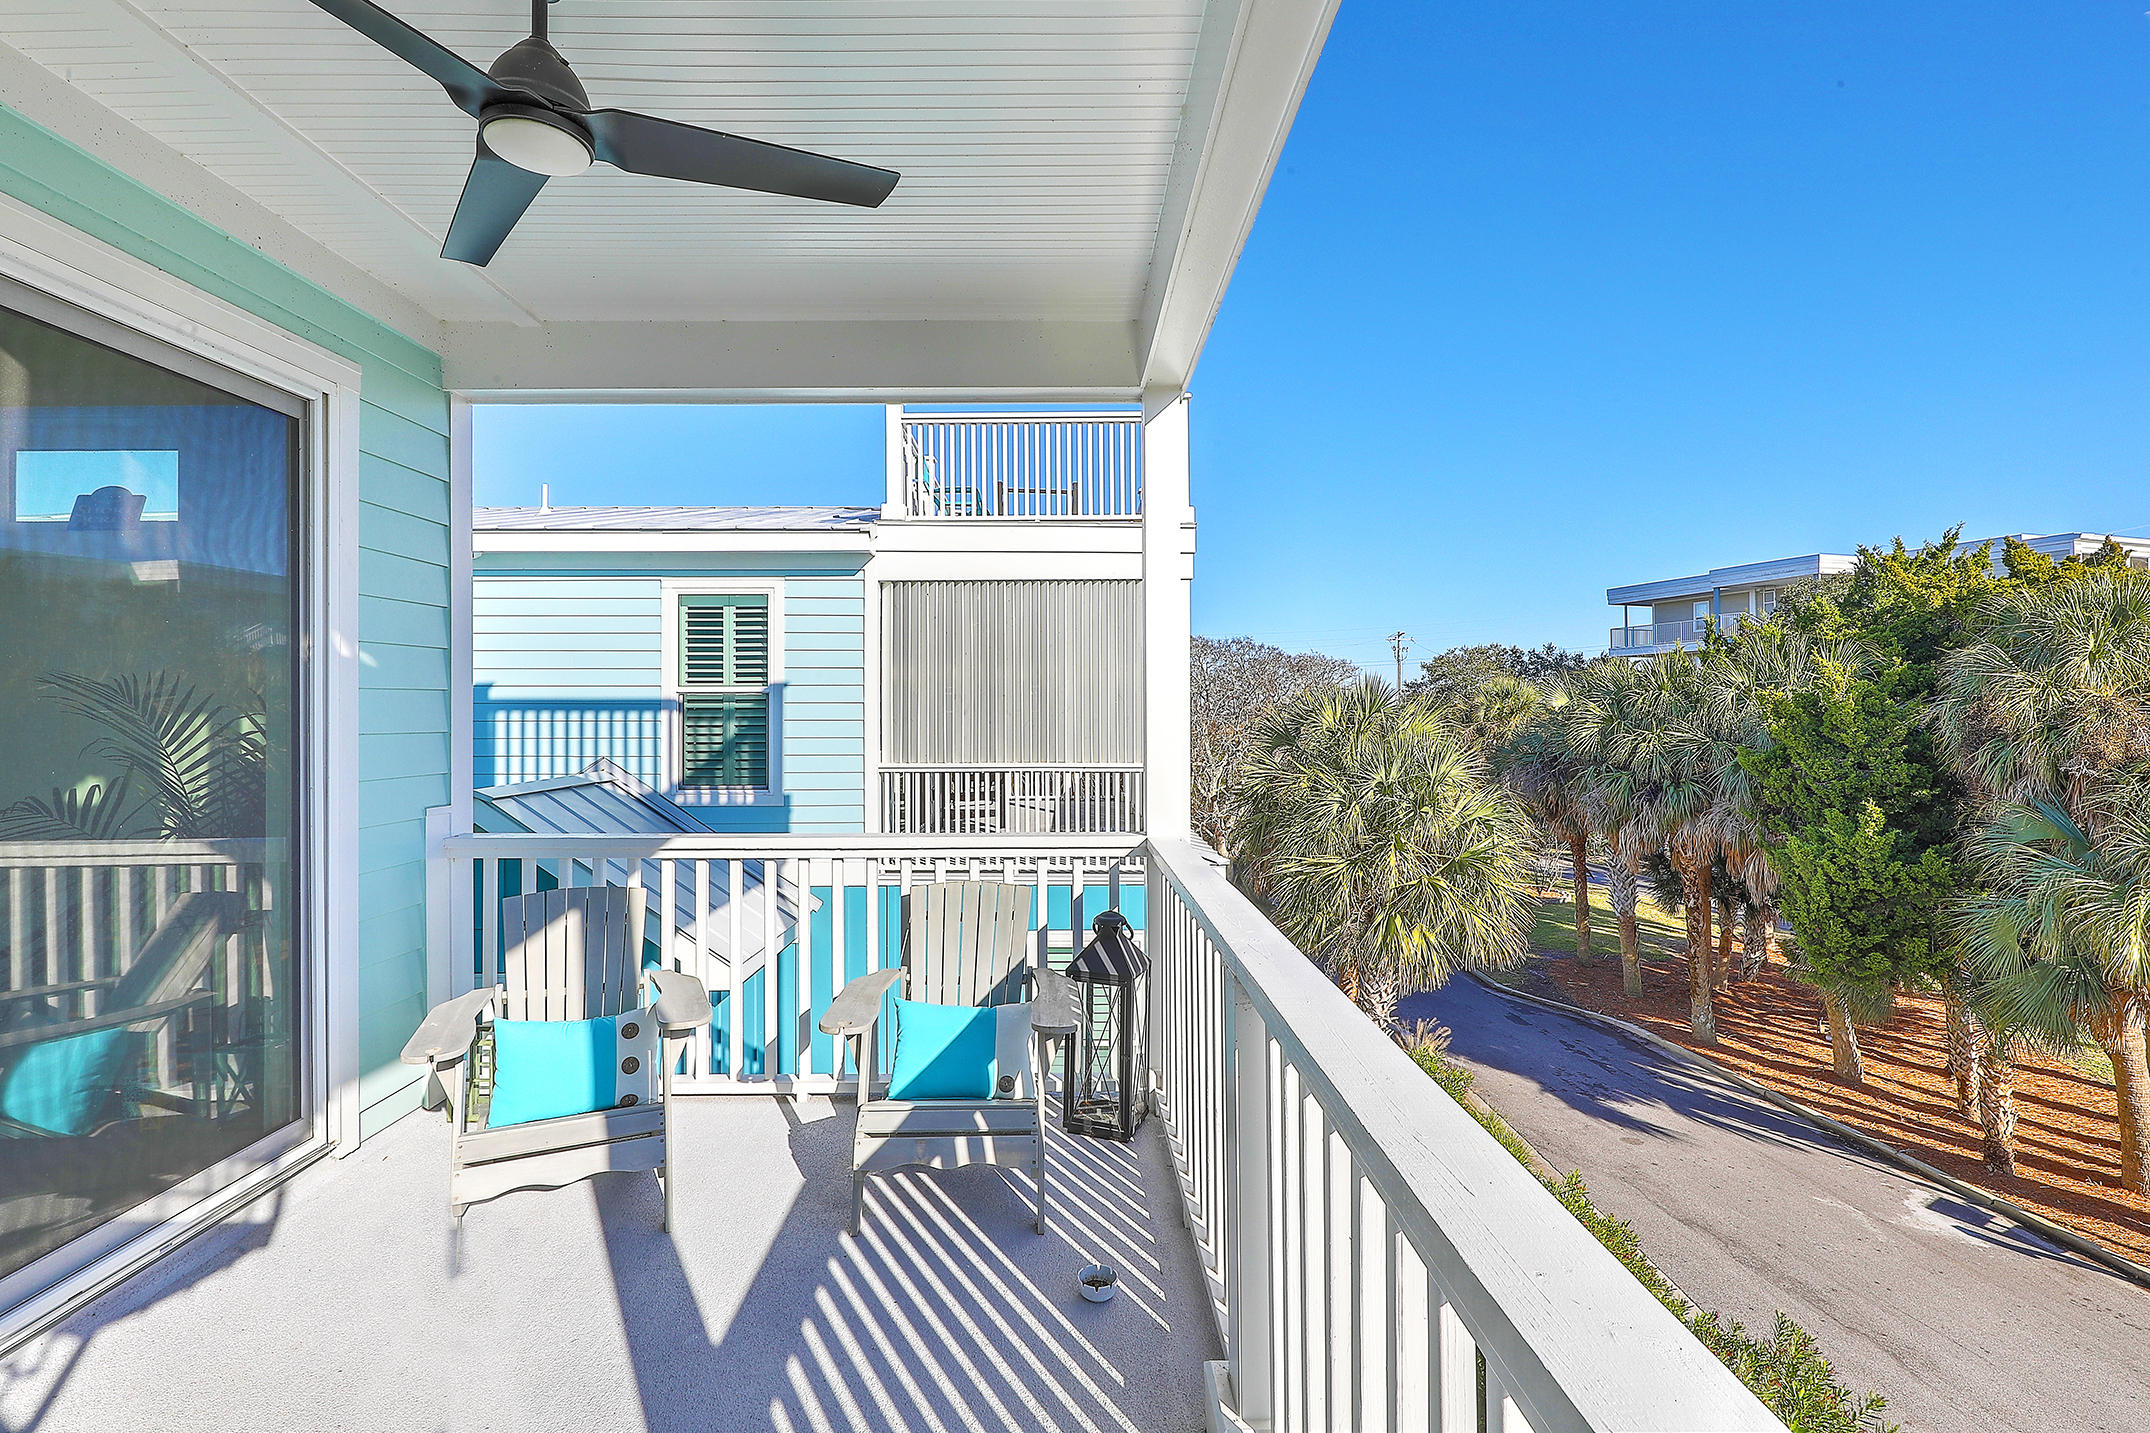 Mariners Cay Homes For Sale - 1004 Mariners Cay, Folly Beach, SC - 3